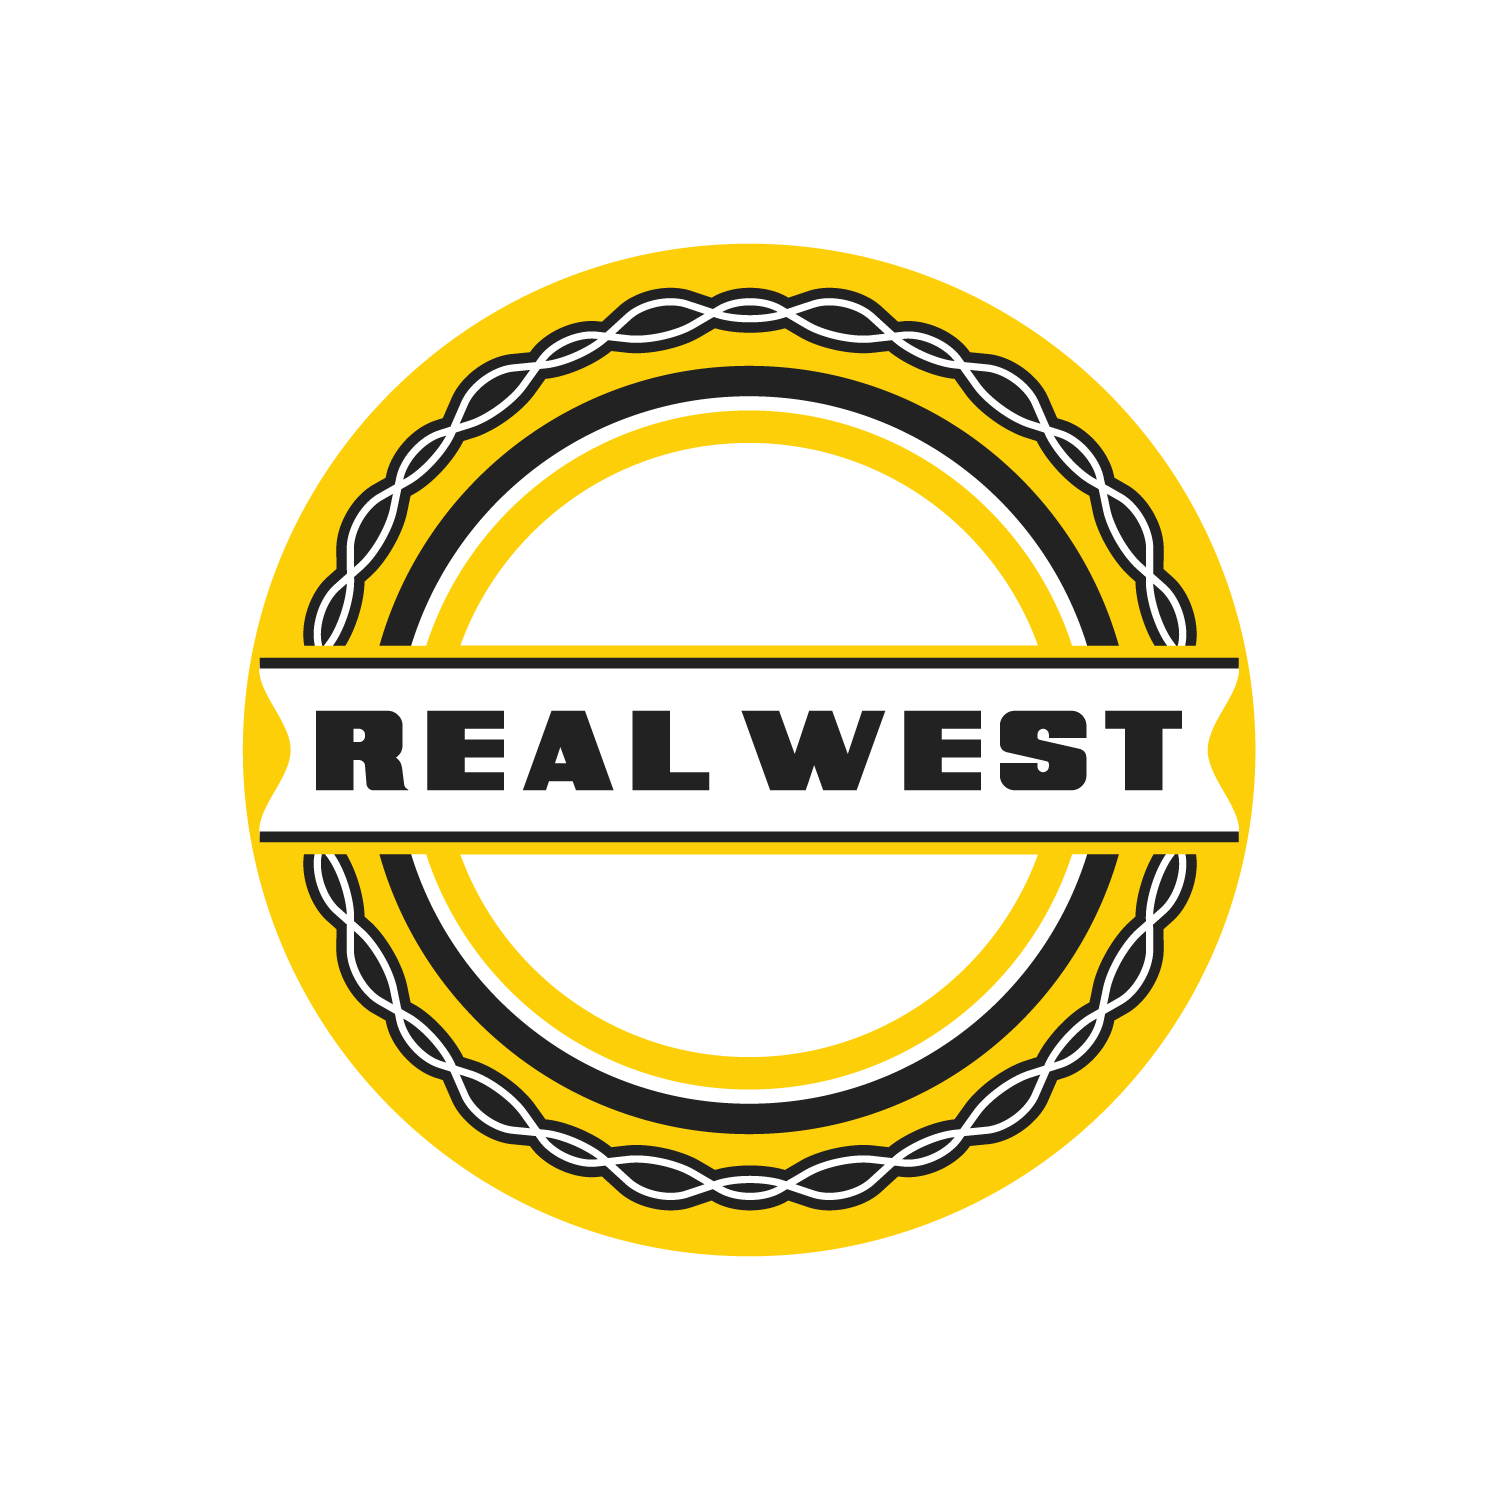 REALWEST.png